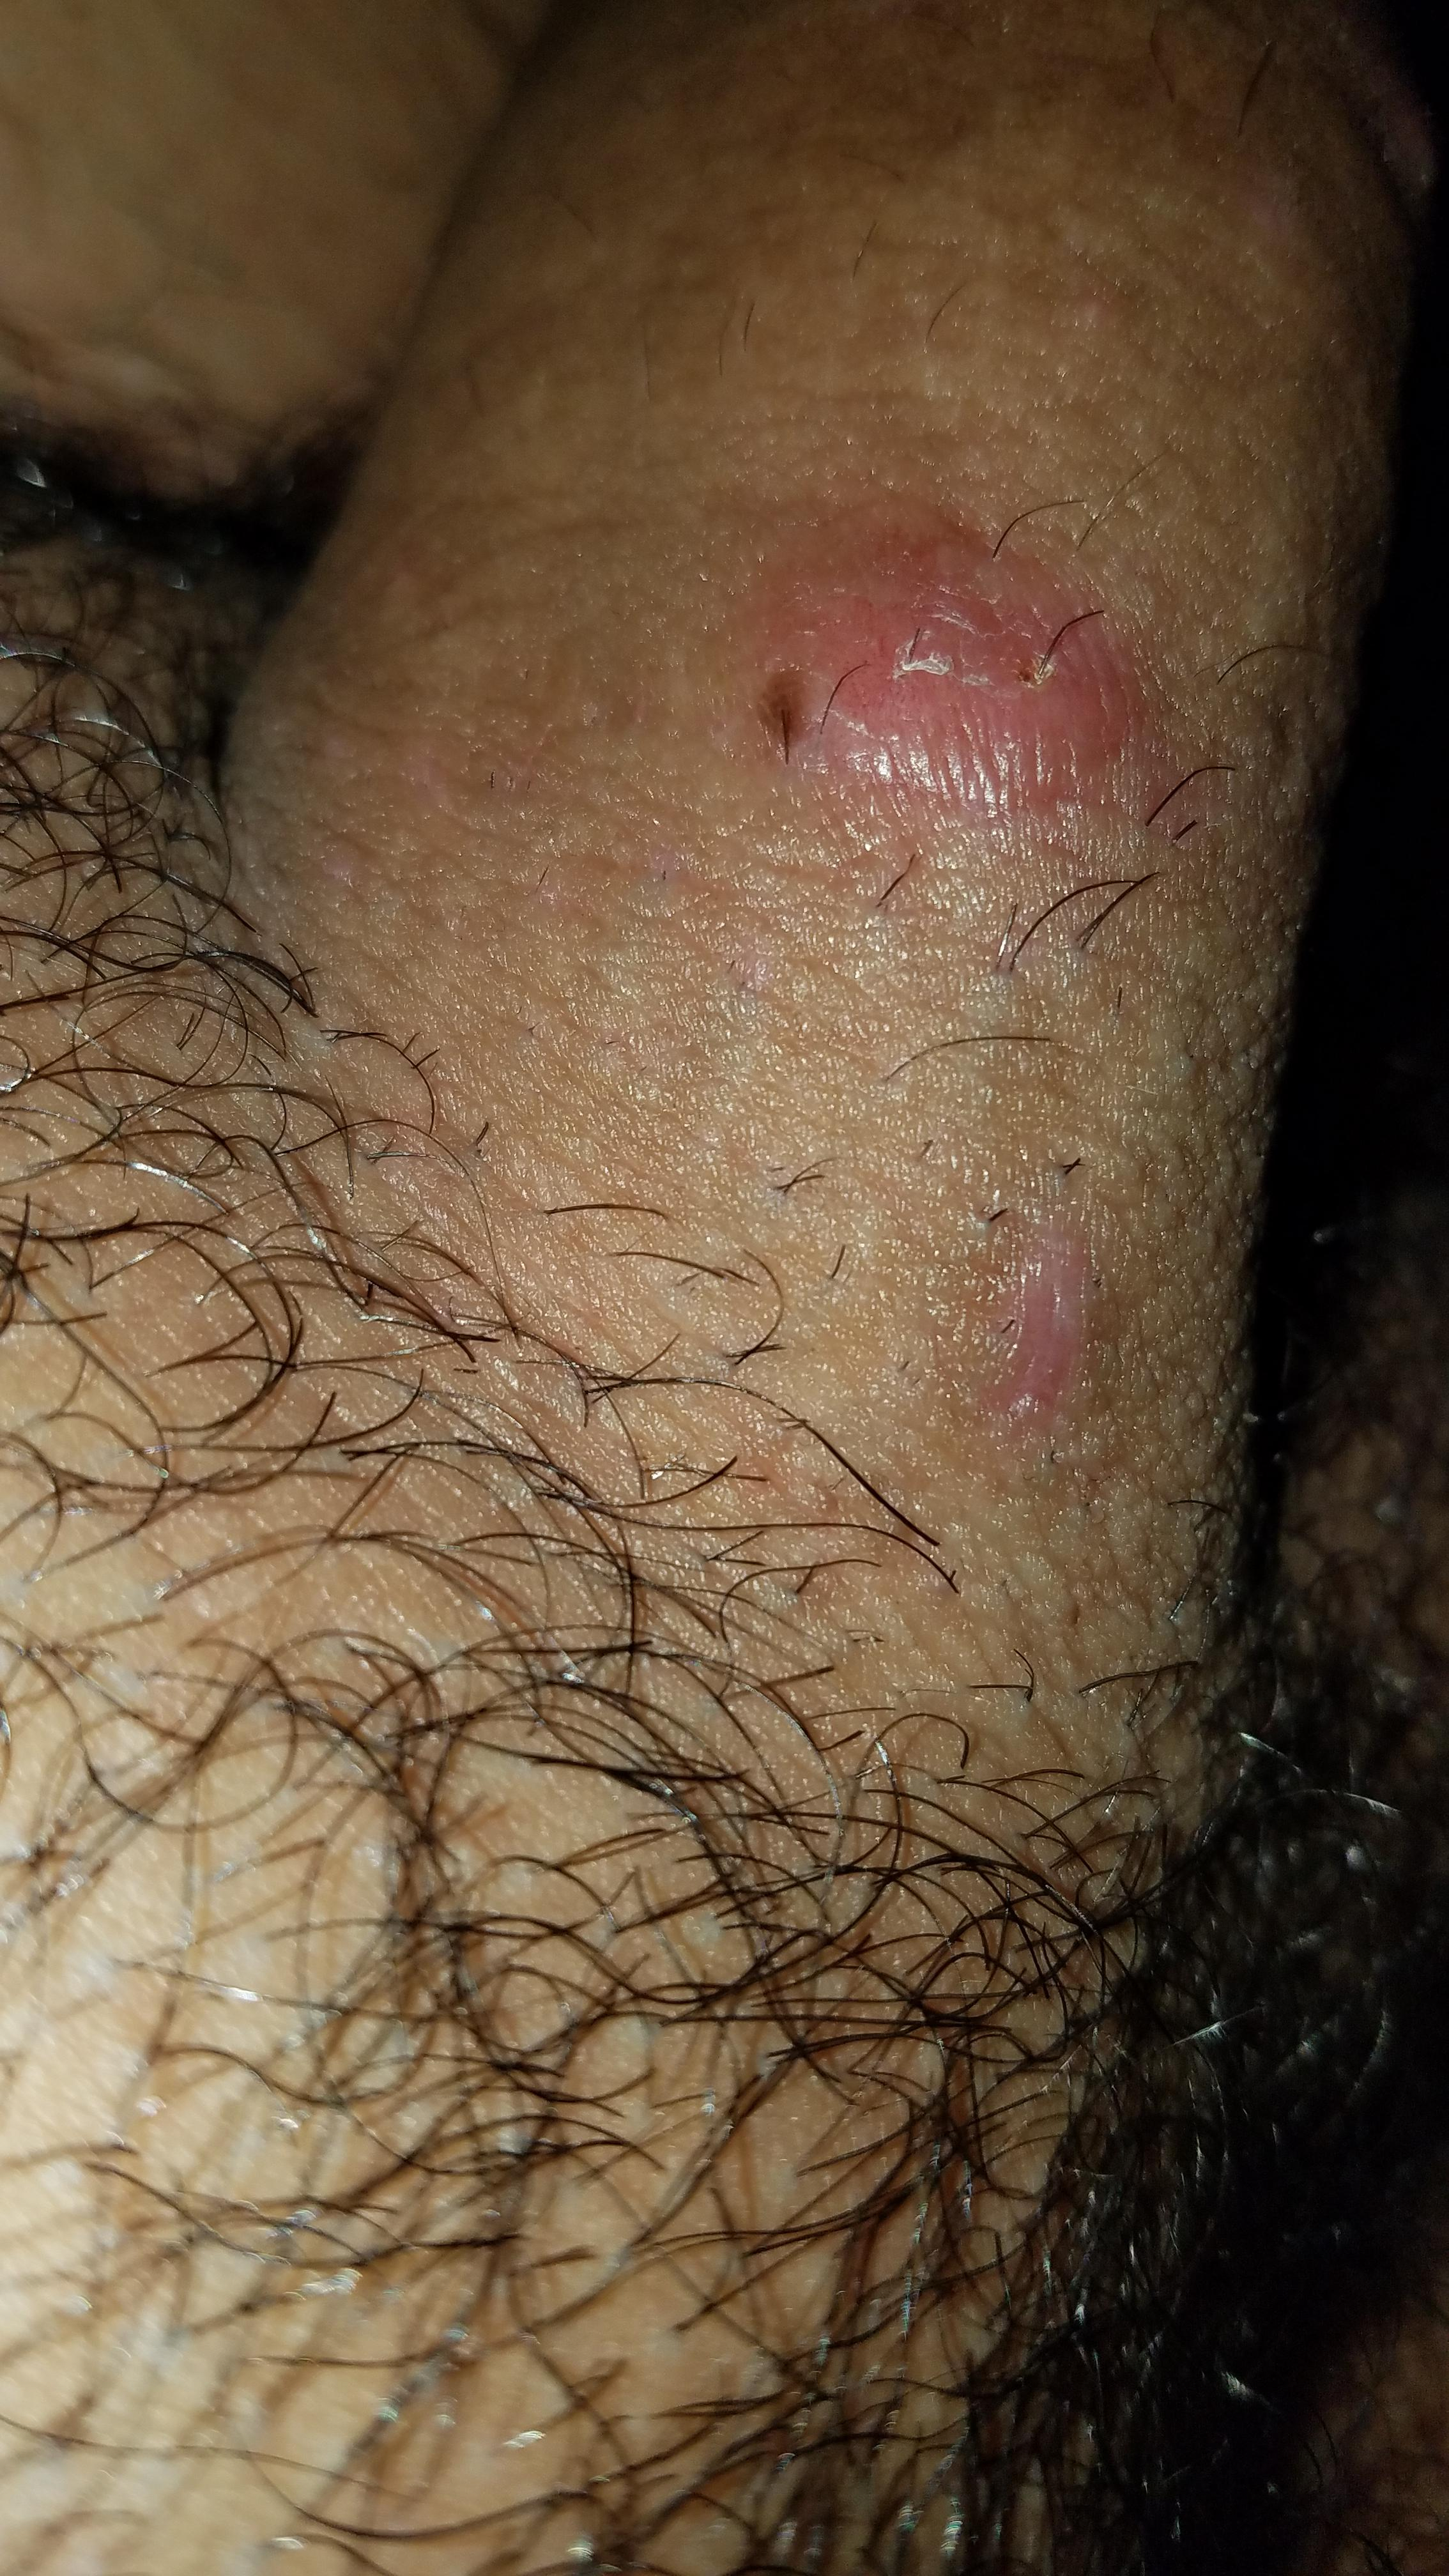 hpv treatment reddit